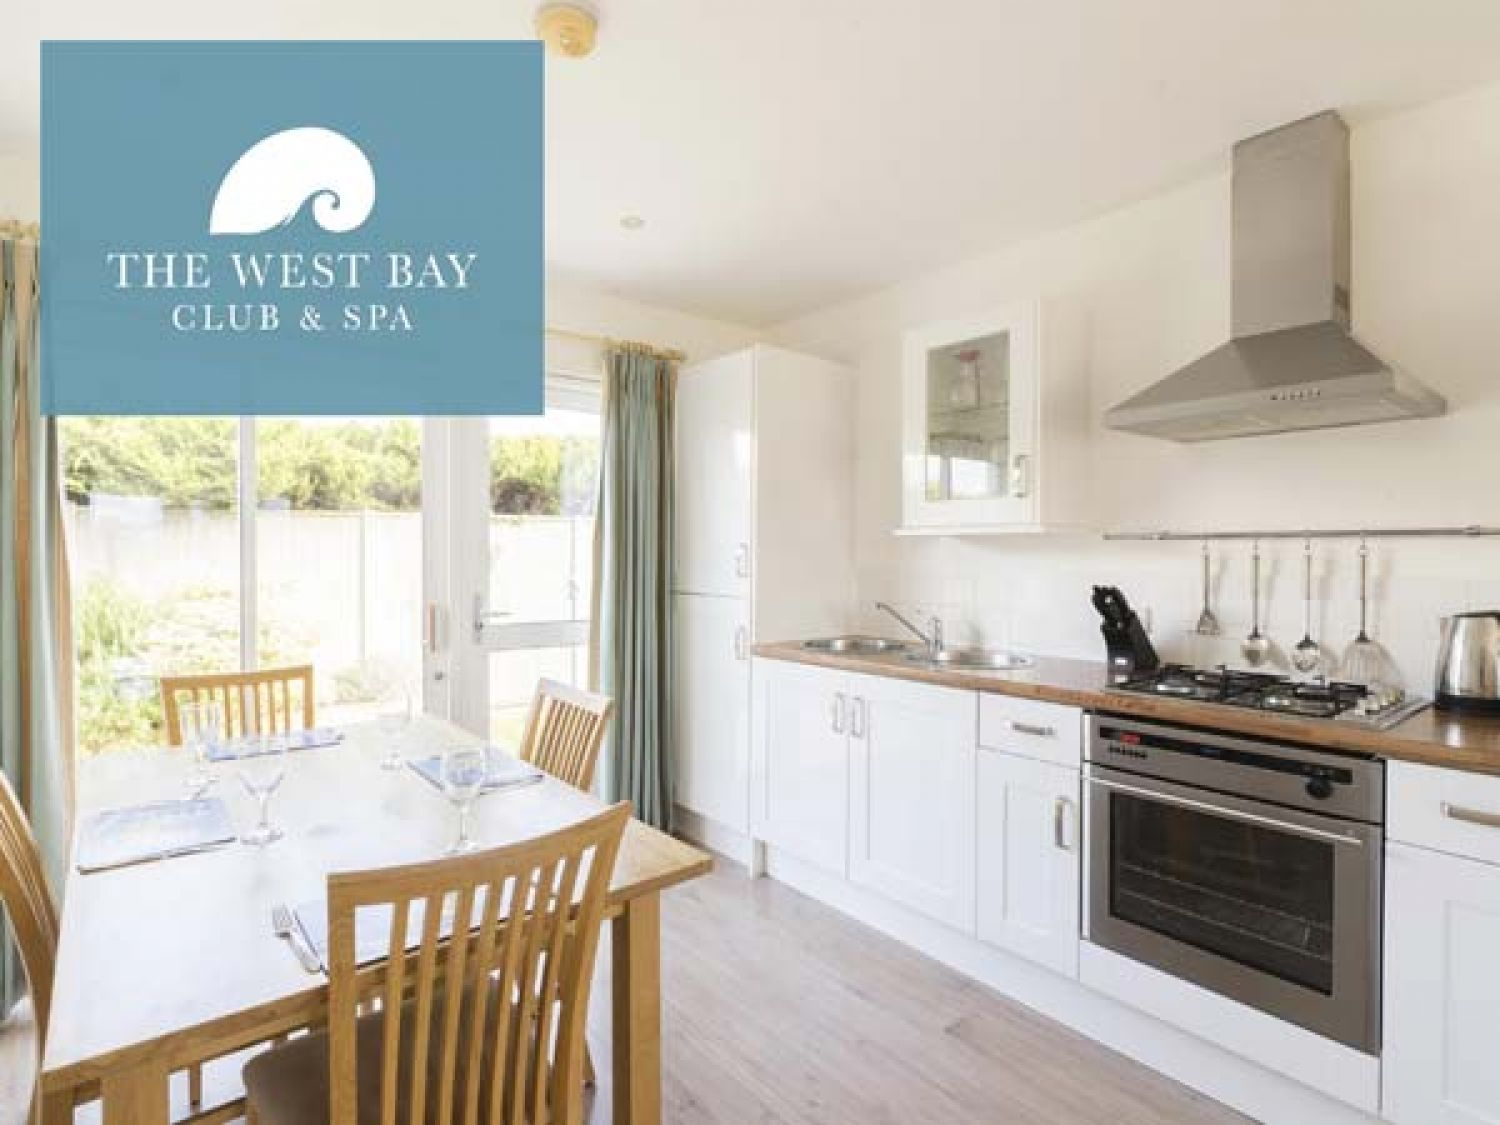 Two bedroom cottage at The West Bay Club & Spa - Isle of Wight & Hampshire - 943762 - photo 1